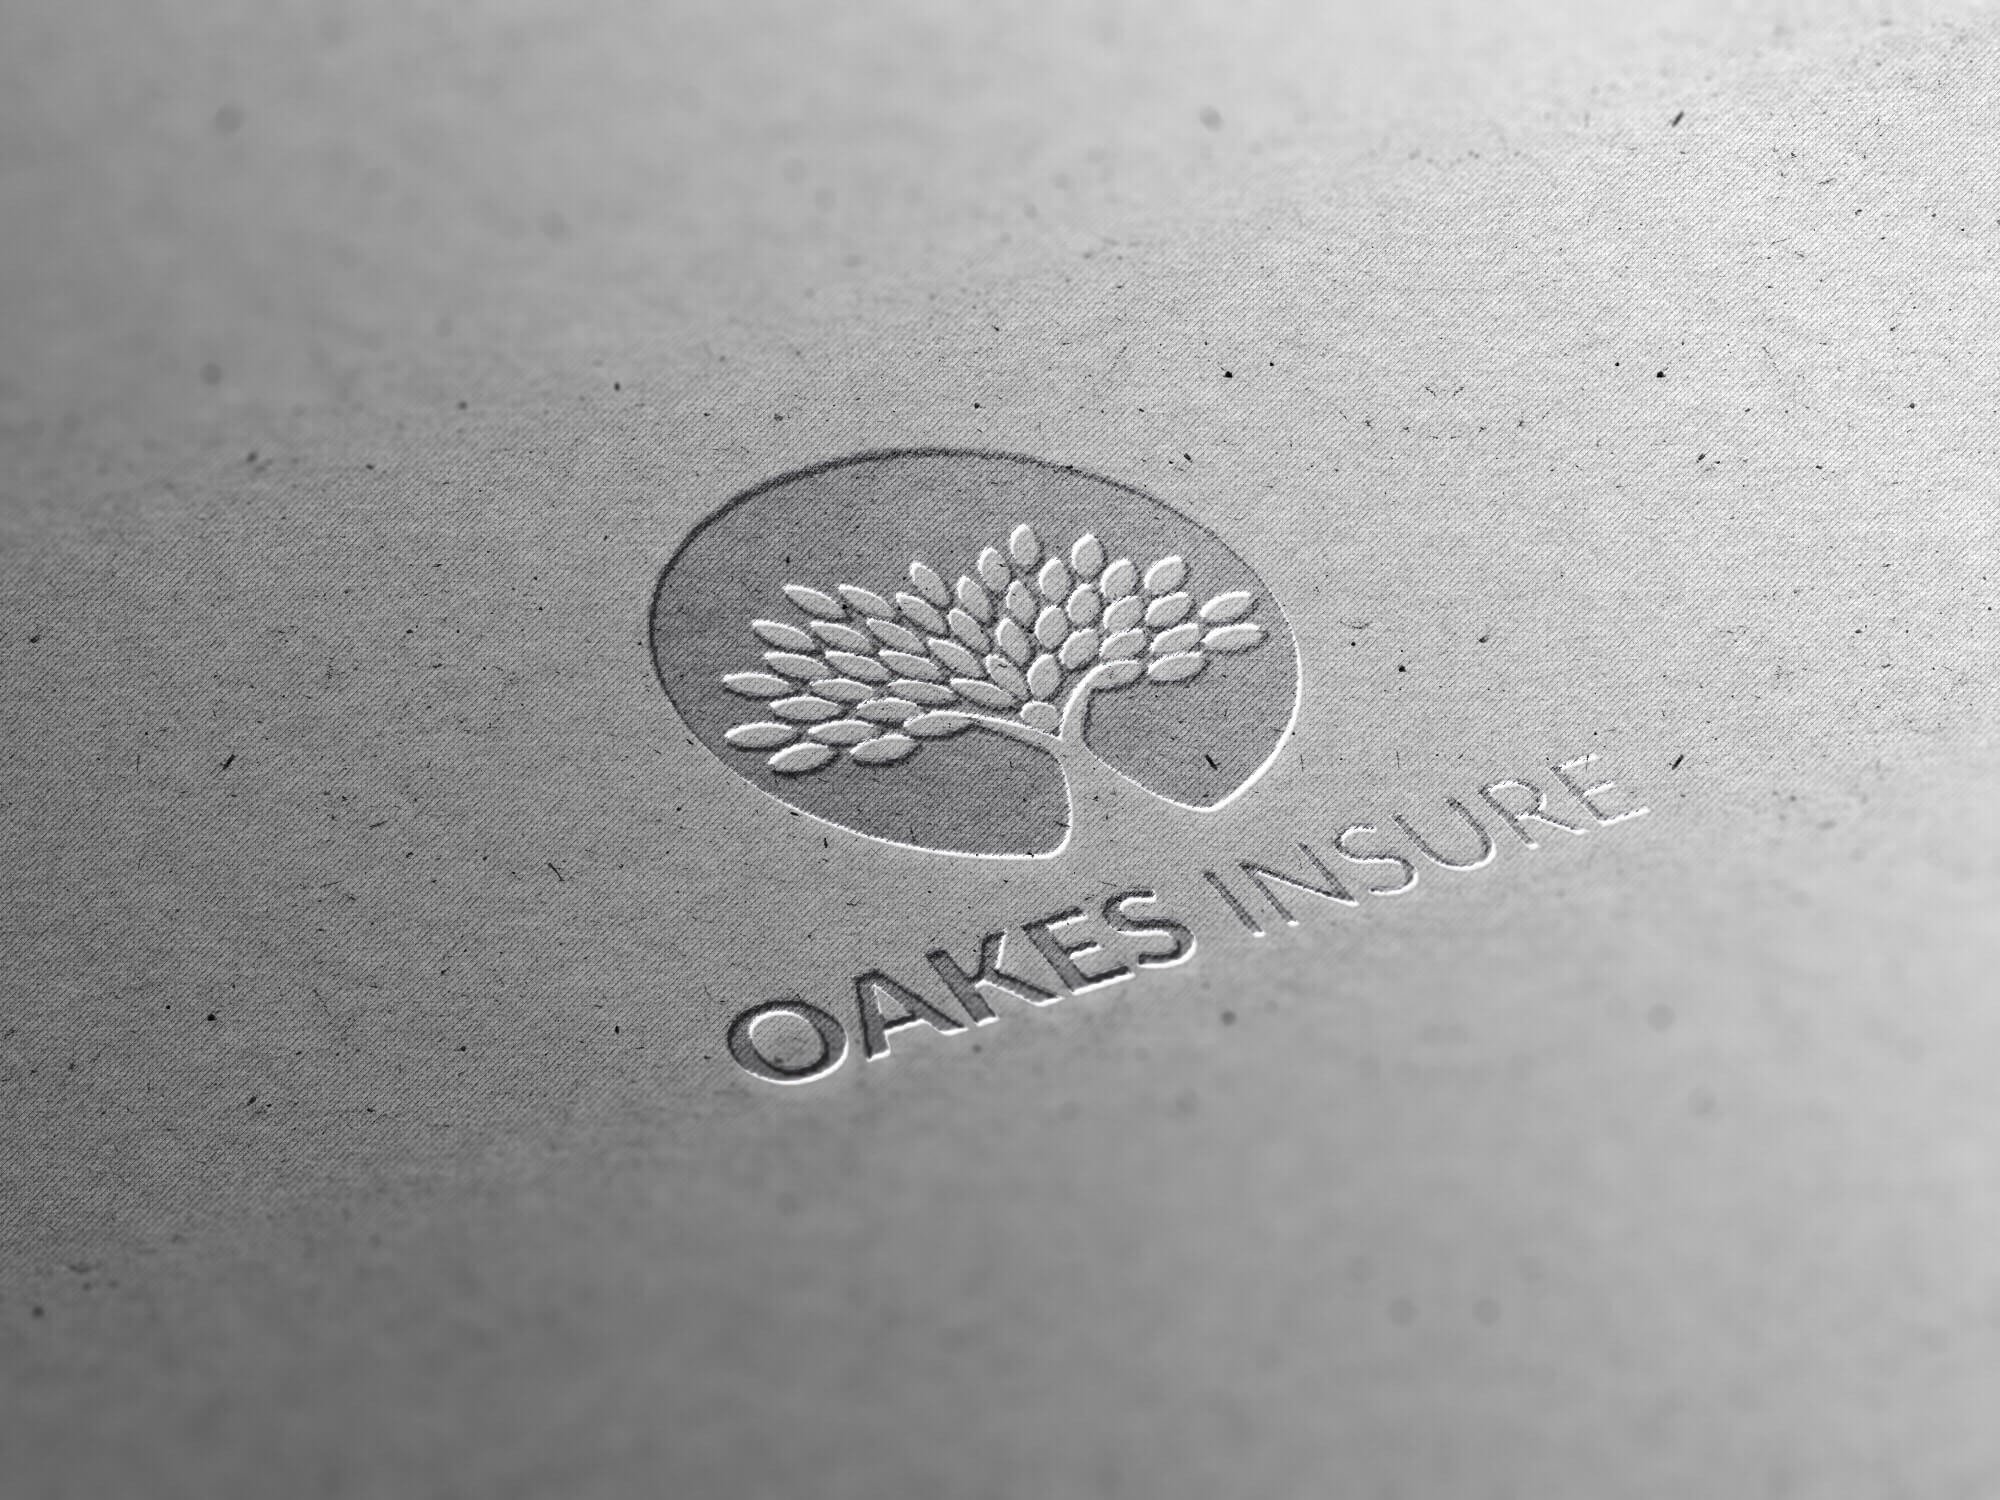 Oakes Insure logo